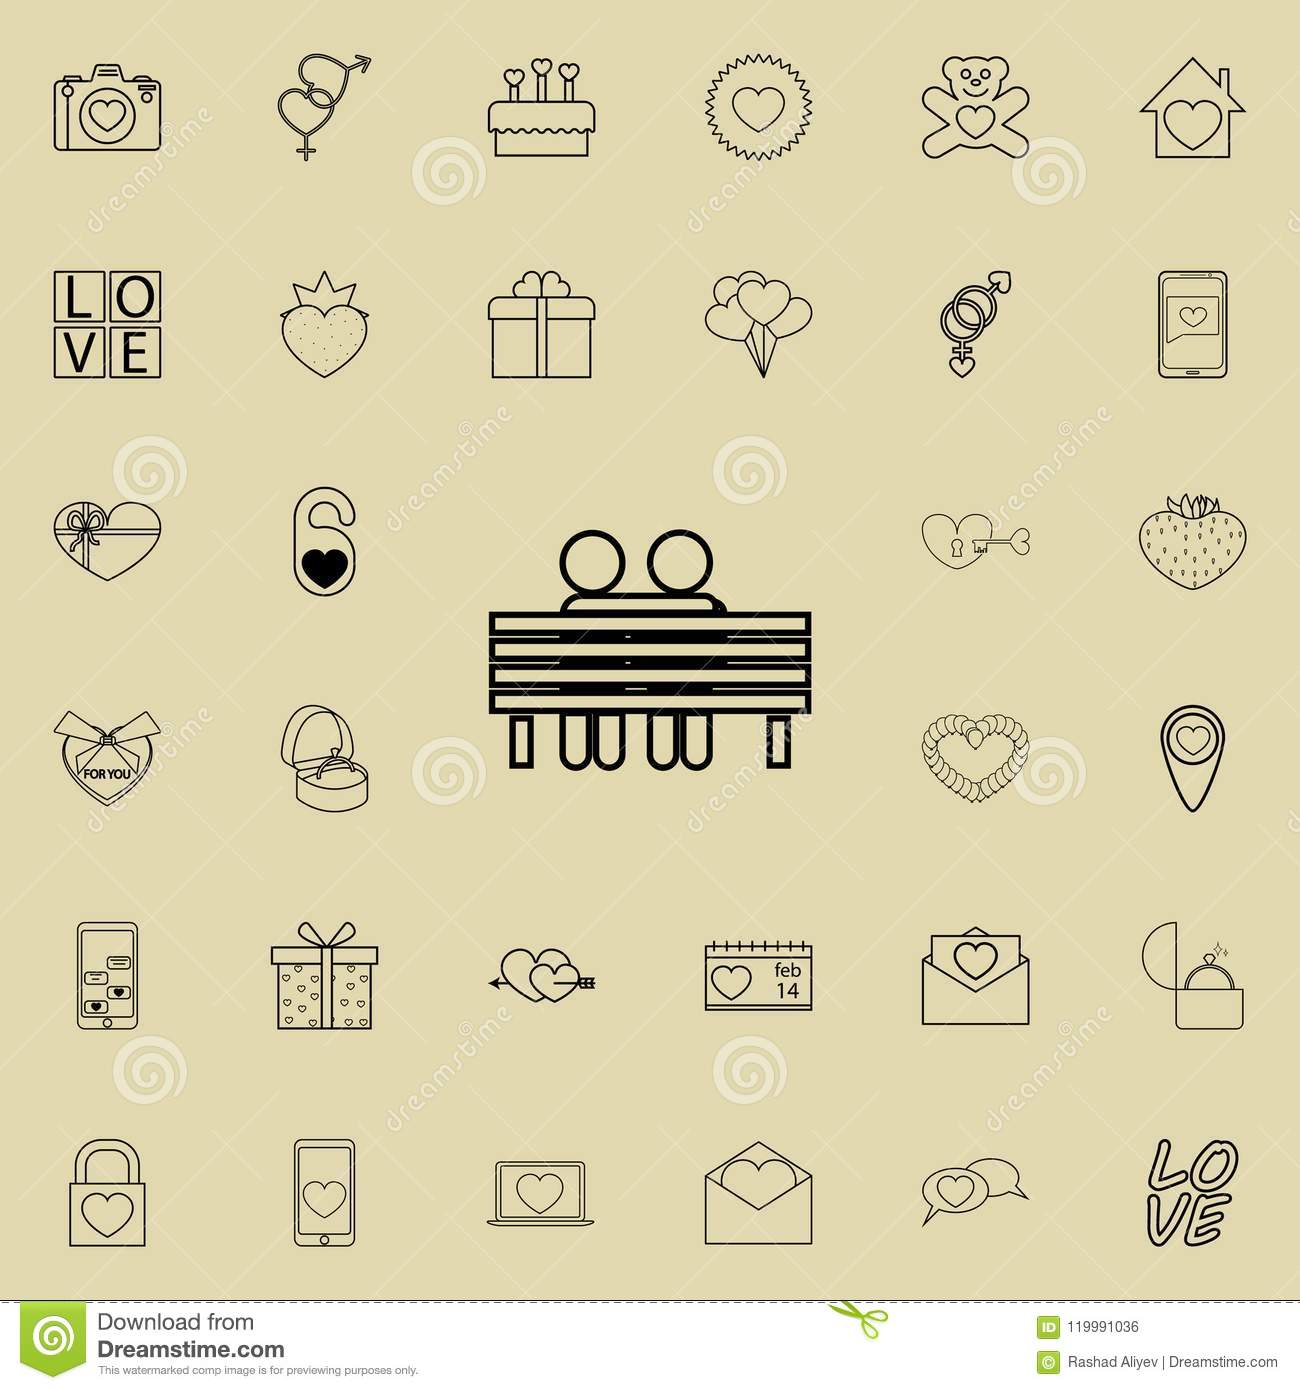 lovers sit on a bench icon. Detailed set of Valentine icons. Premium quality graphic design sign. One of the collection icons for